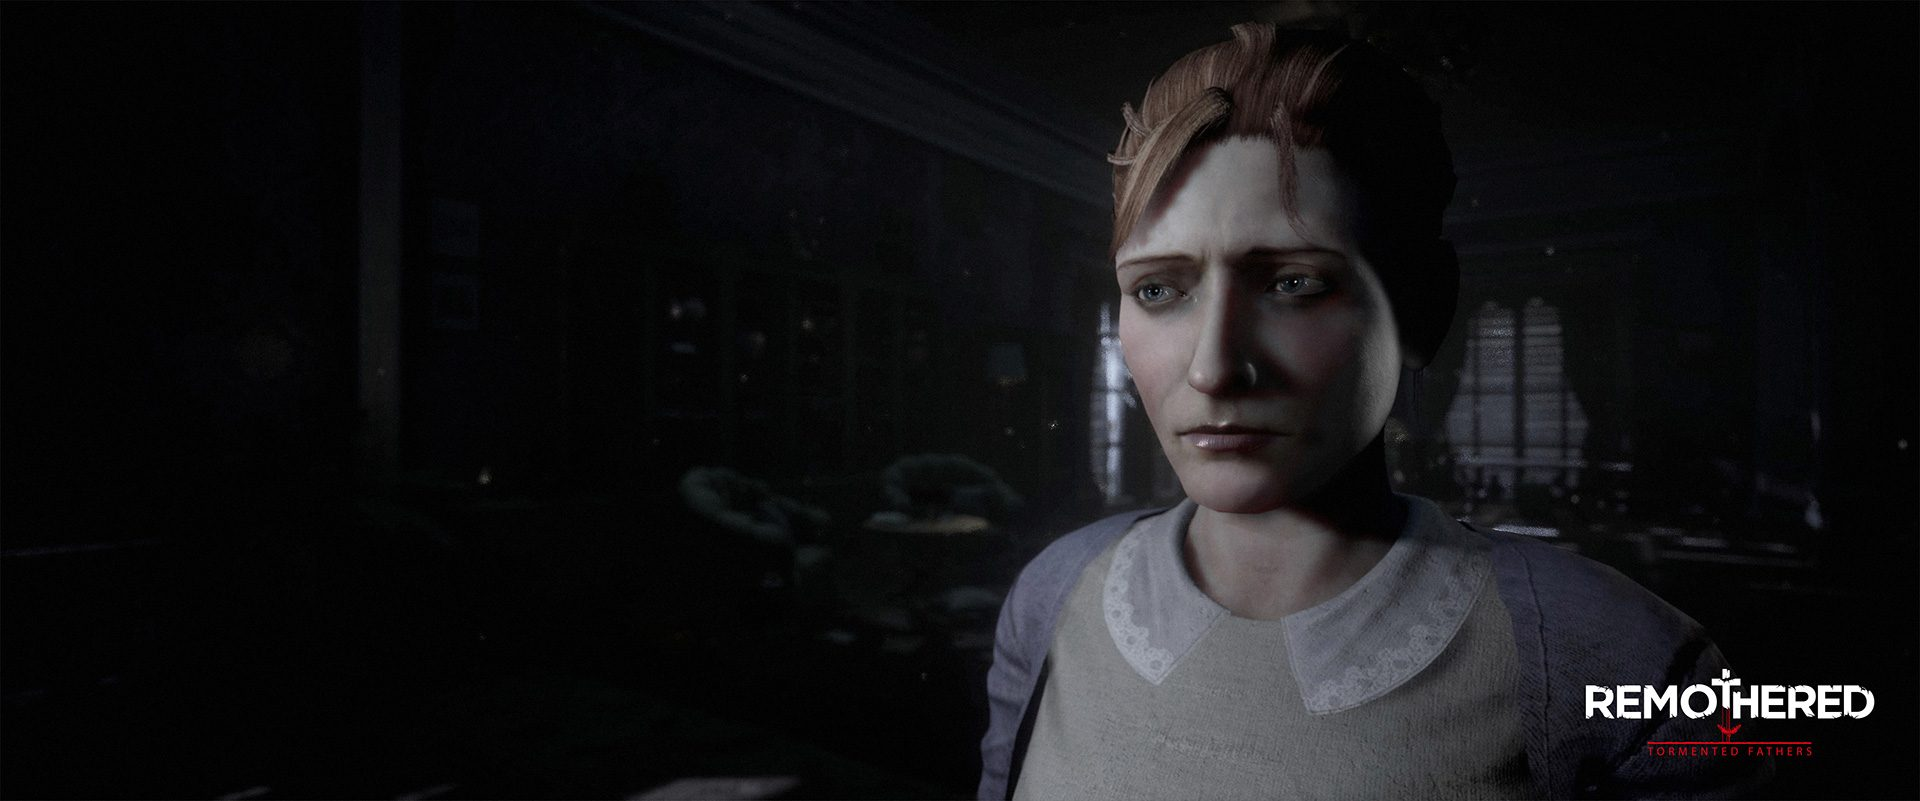 Remothered-Tormented-Fathers-14.jpg